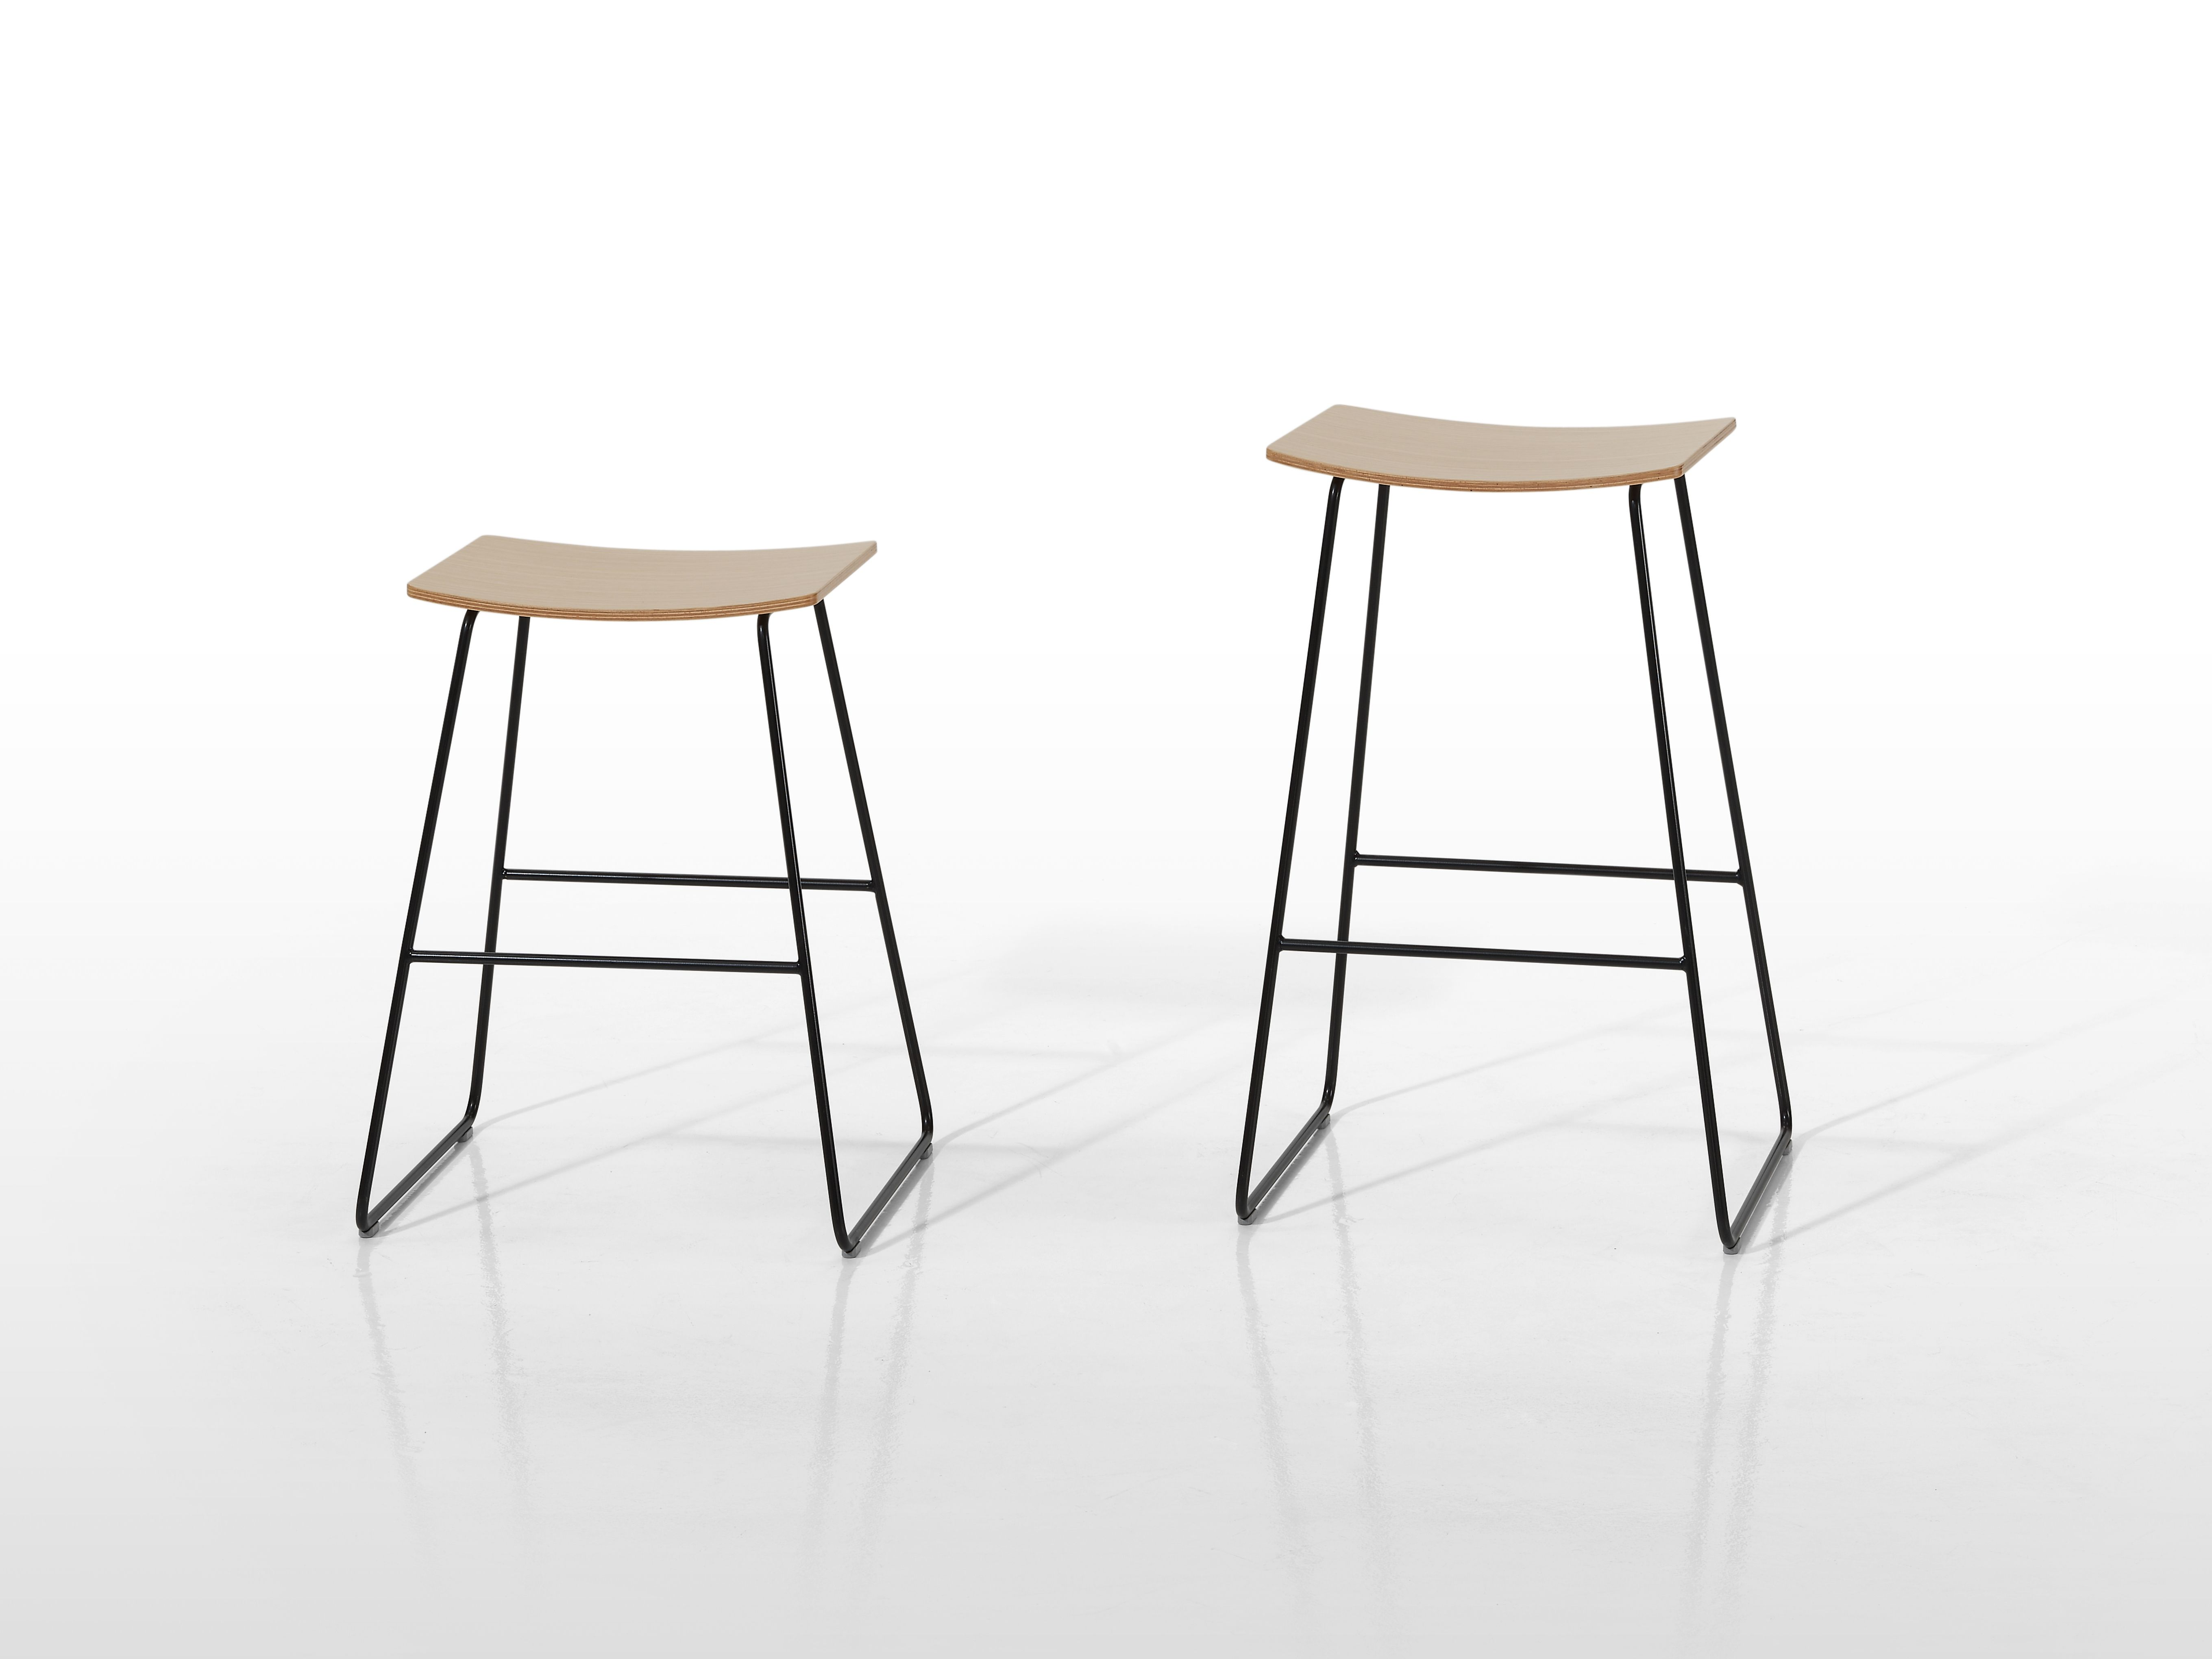 Tao   Bar And Counter Stools Available In Upholstered And Non Upholstered  Versions With Steel Frame